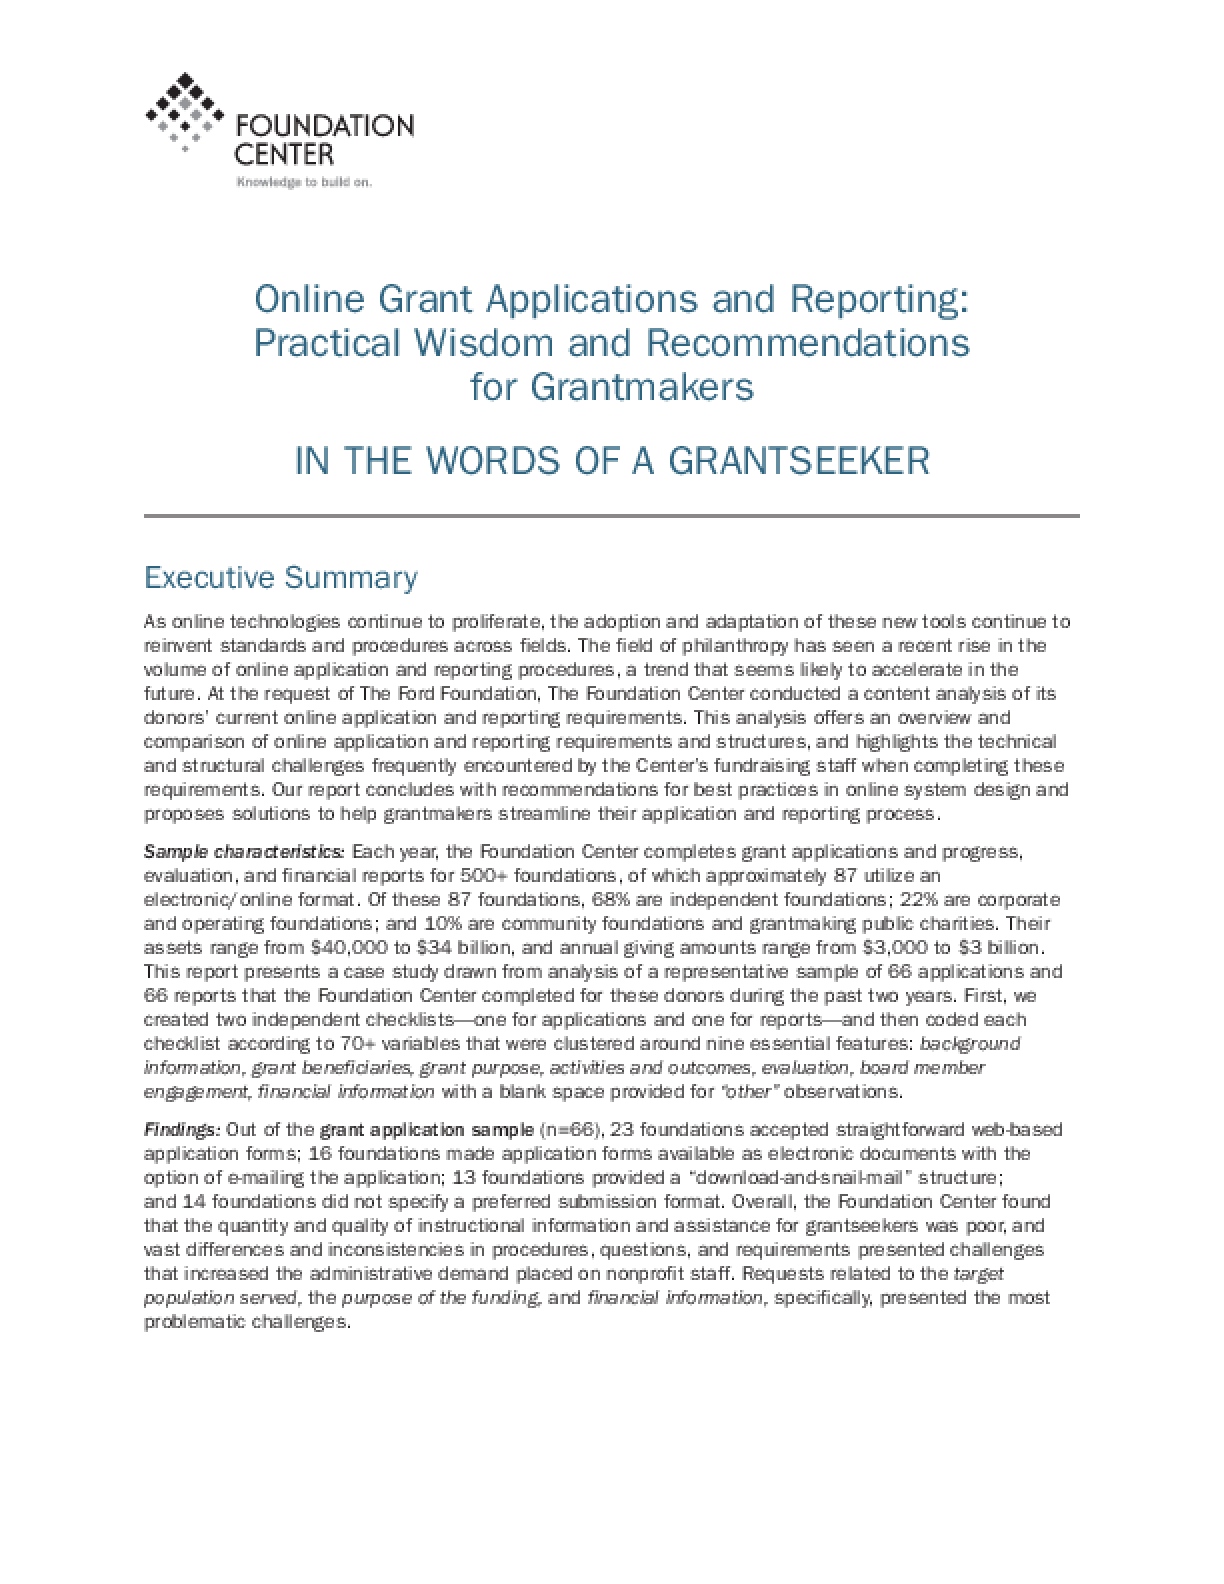 Online Grant Applications and Reporting: Practical Wisdom and Recommendations for Grantmakers in the Words of a Grantseeker